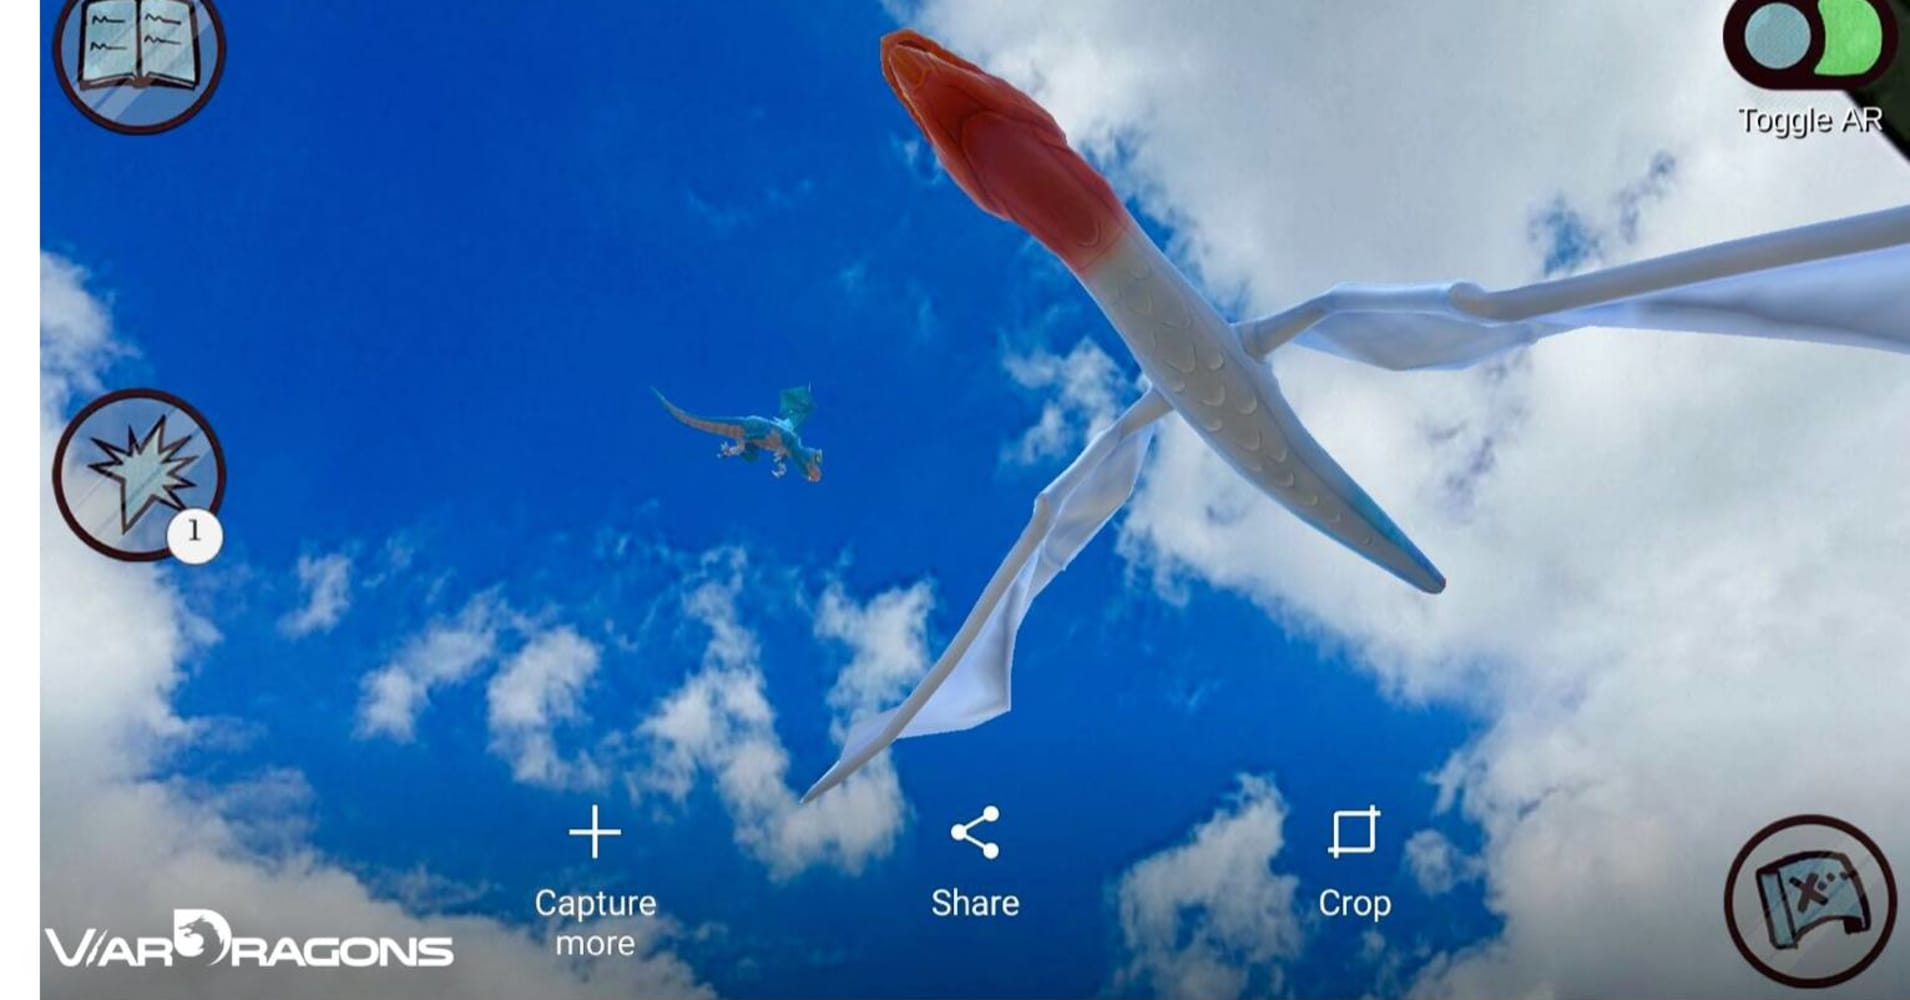 An augmented reality overlay showing a Norwegian Air flight as a dragon.